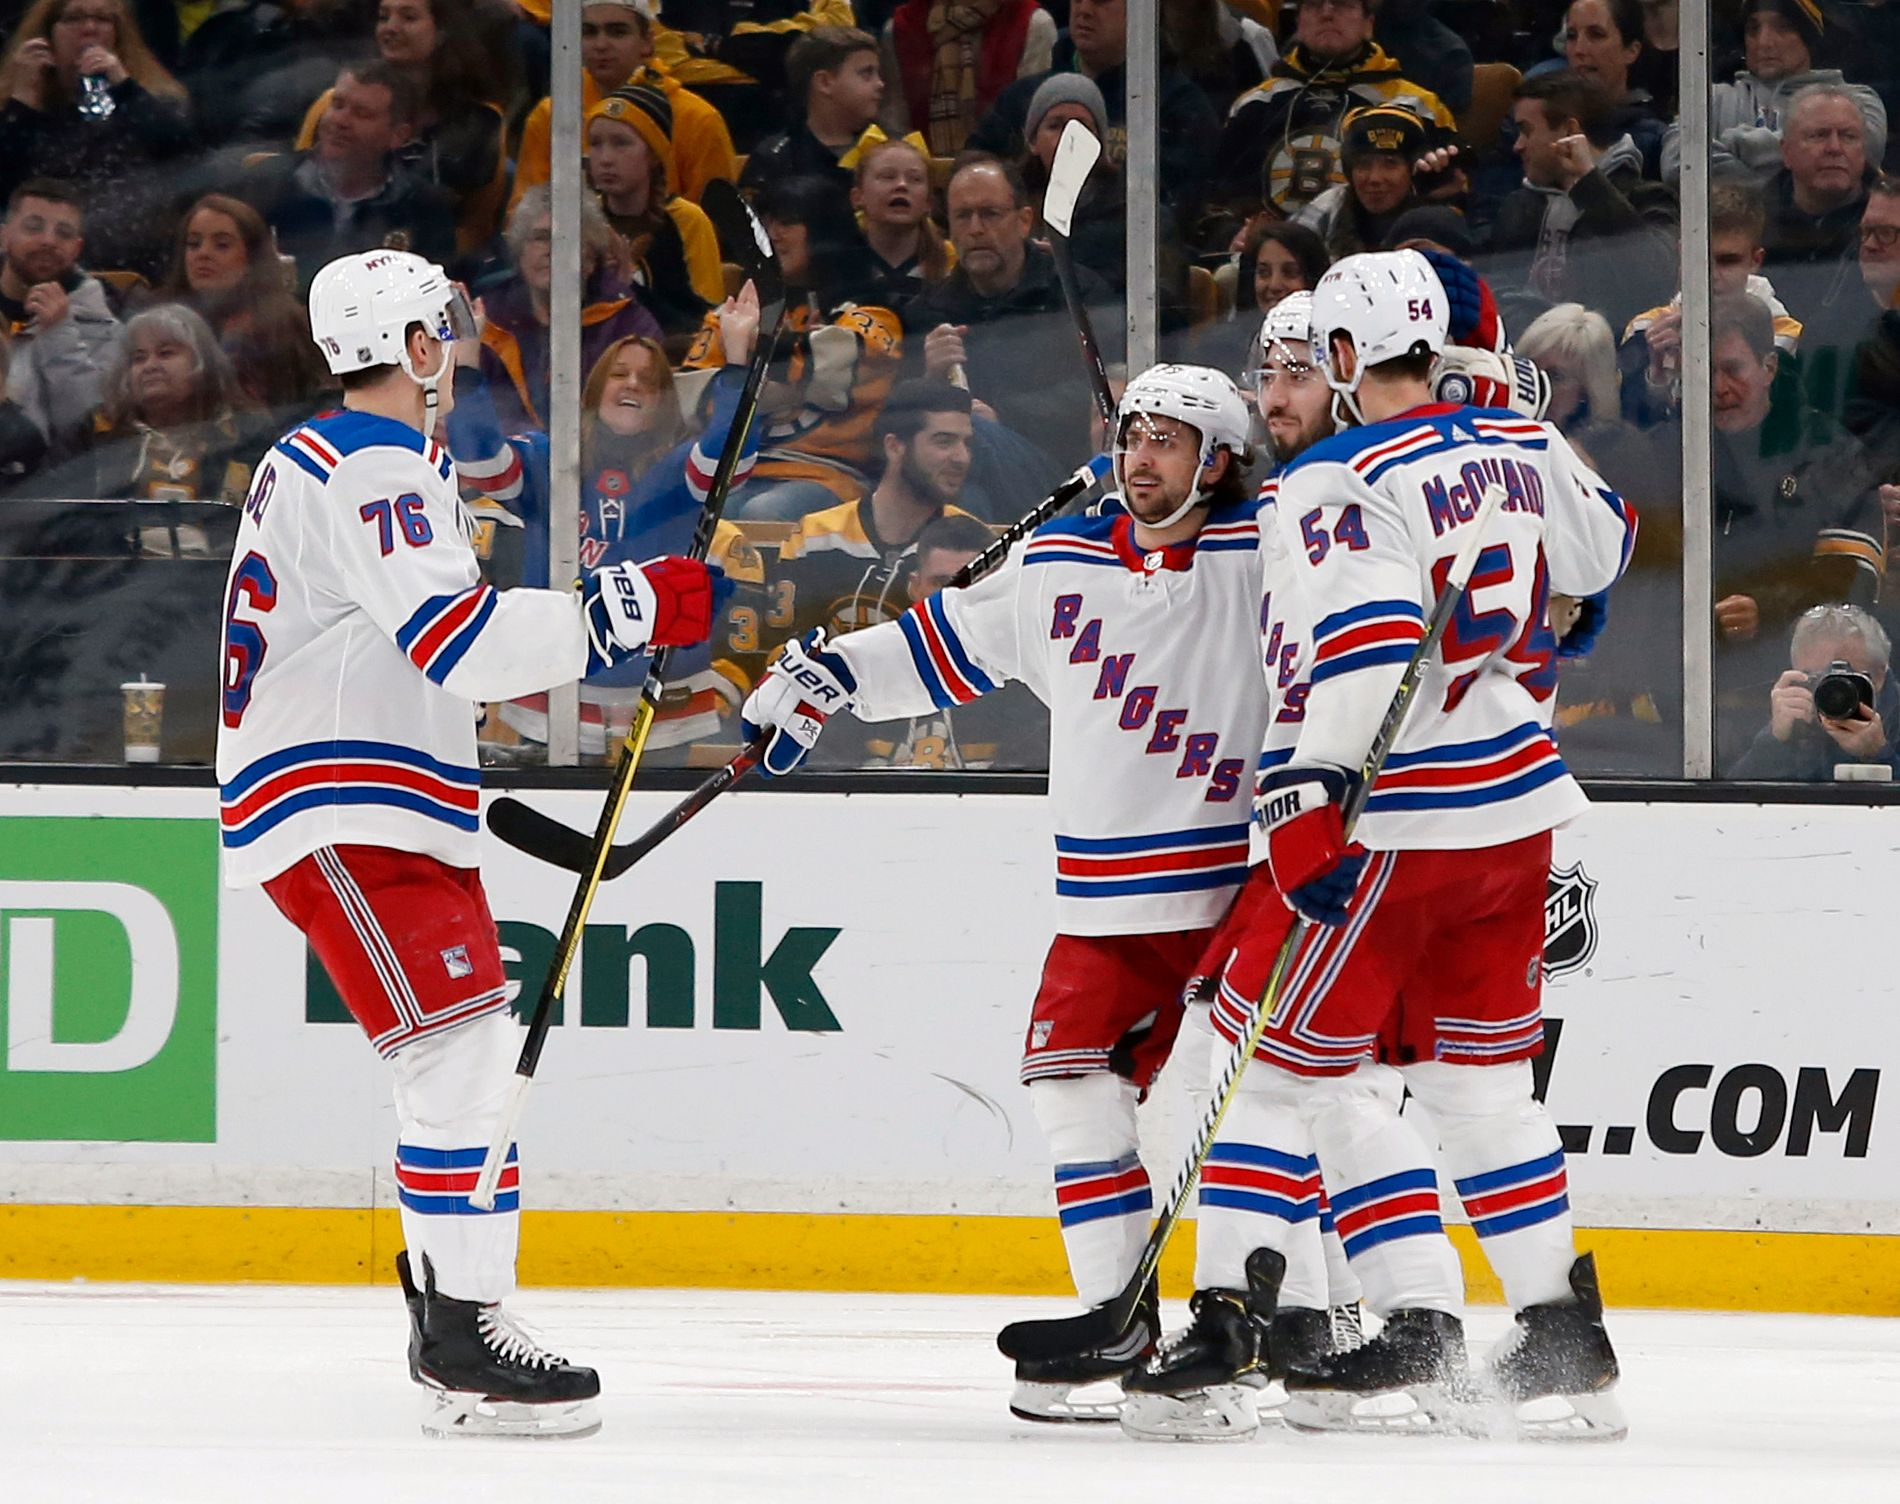 Mats Zuccarello (i midten) jubler for mål i NHL for New York Rangers. Foto: Mary Schwalm, AP / NTB scanpix